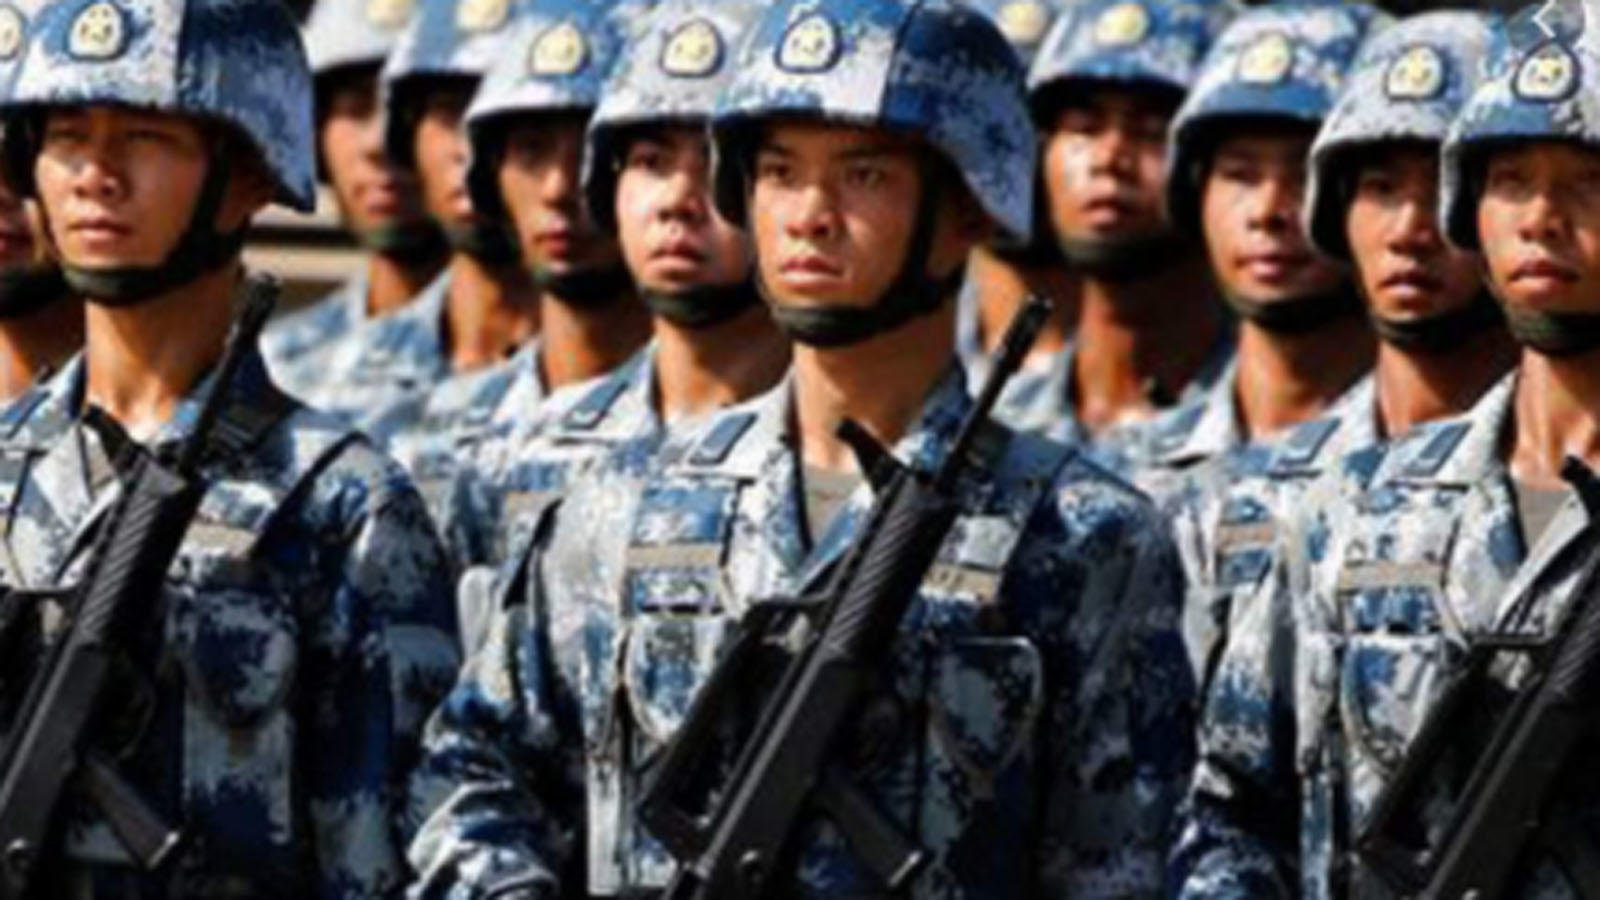 china-doubled-air-bases-heliports-near-lac-since-doklam-standoff-says-report